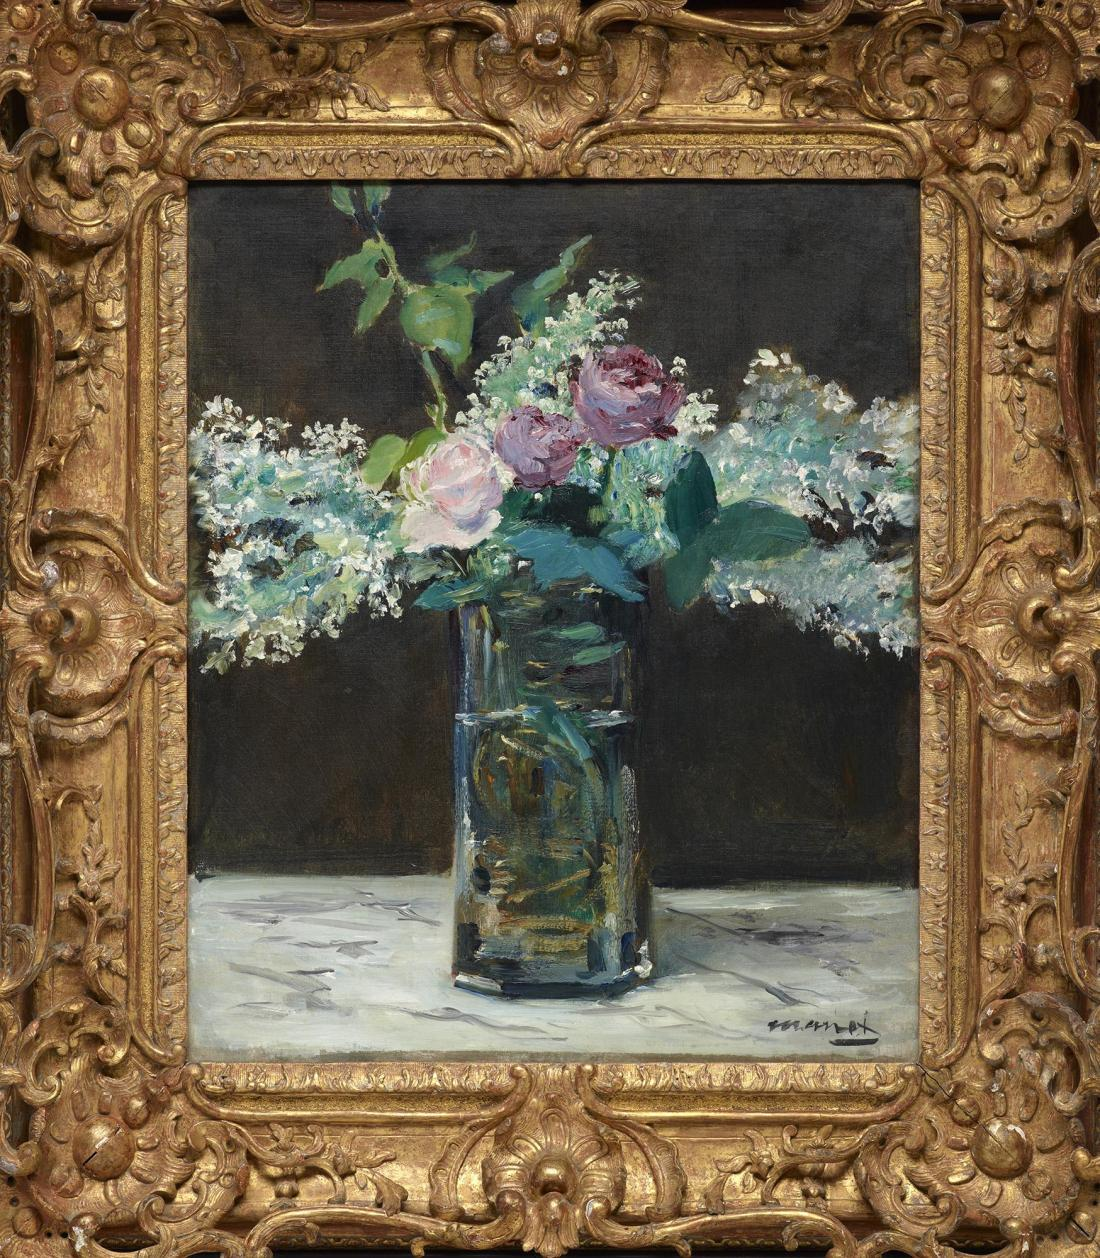 Edouard Manet, Vase of White Lilacs and Roses, 1868.